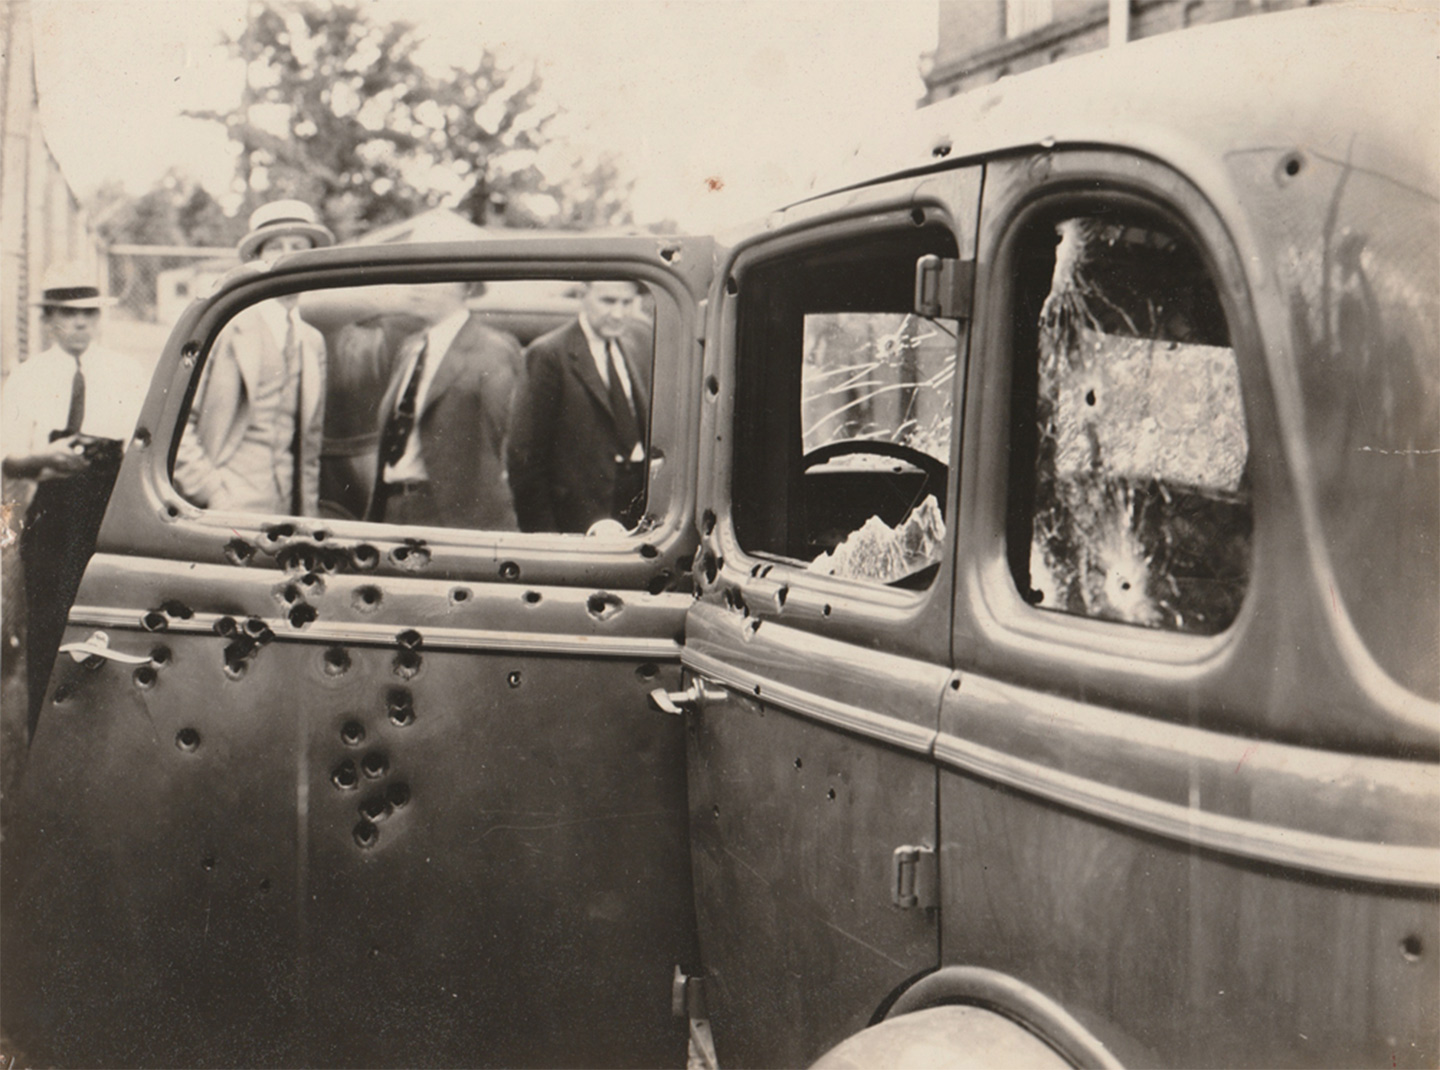 Cash For Cars Dallas >> Rare Photos of Bonnie and Clyde Show Them at the End of Their Lives